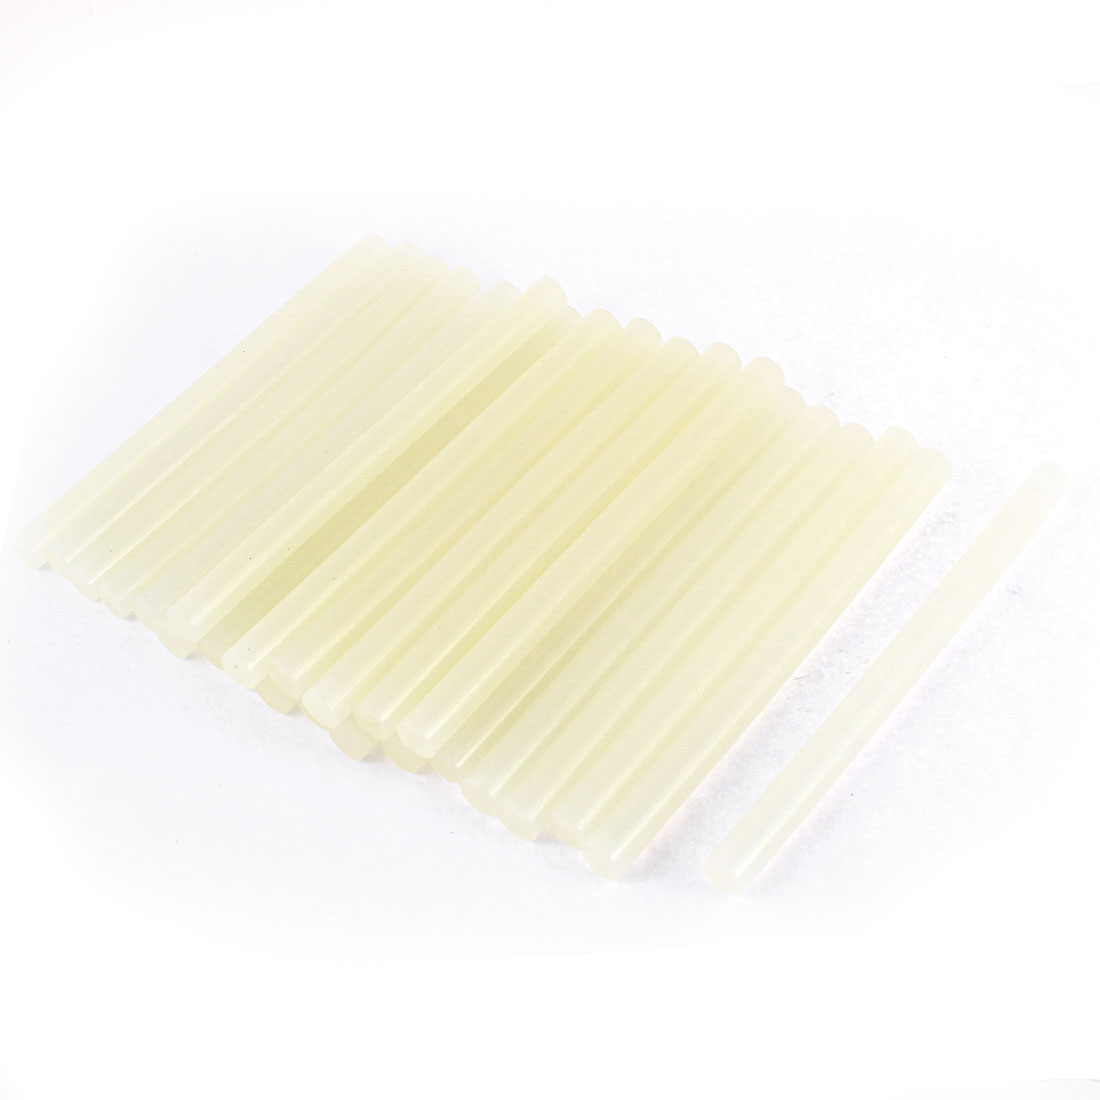 24Pcs Beige Glue Stick Hot Melt Gun Car Sudio Technology 150mm x 11mm